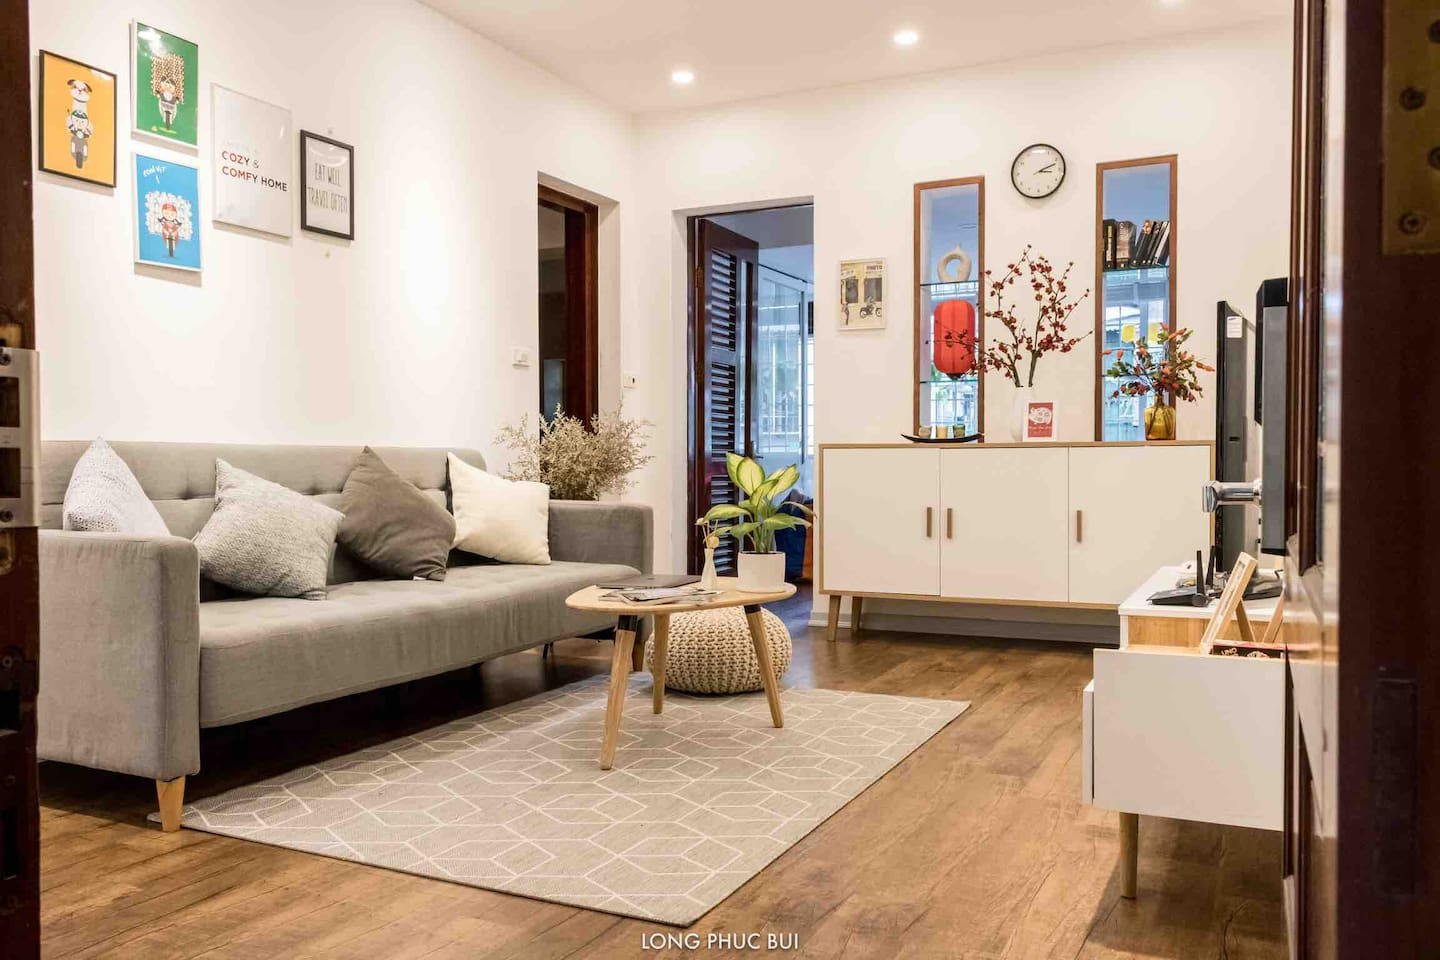 The living room was designed in modern-day style with Vietnam tradition still being the main inspiration which we really hope can give you the sense of restfulness after a tiring day of exploring the city.